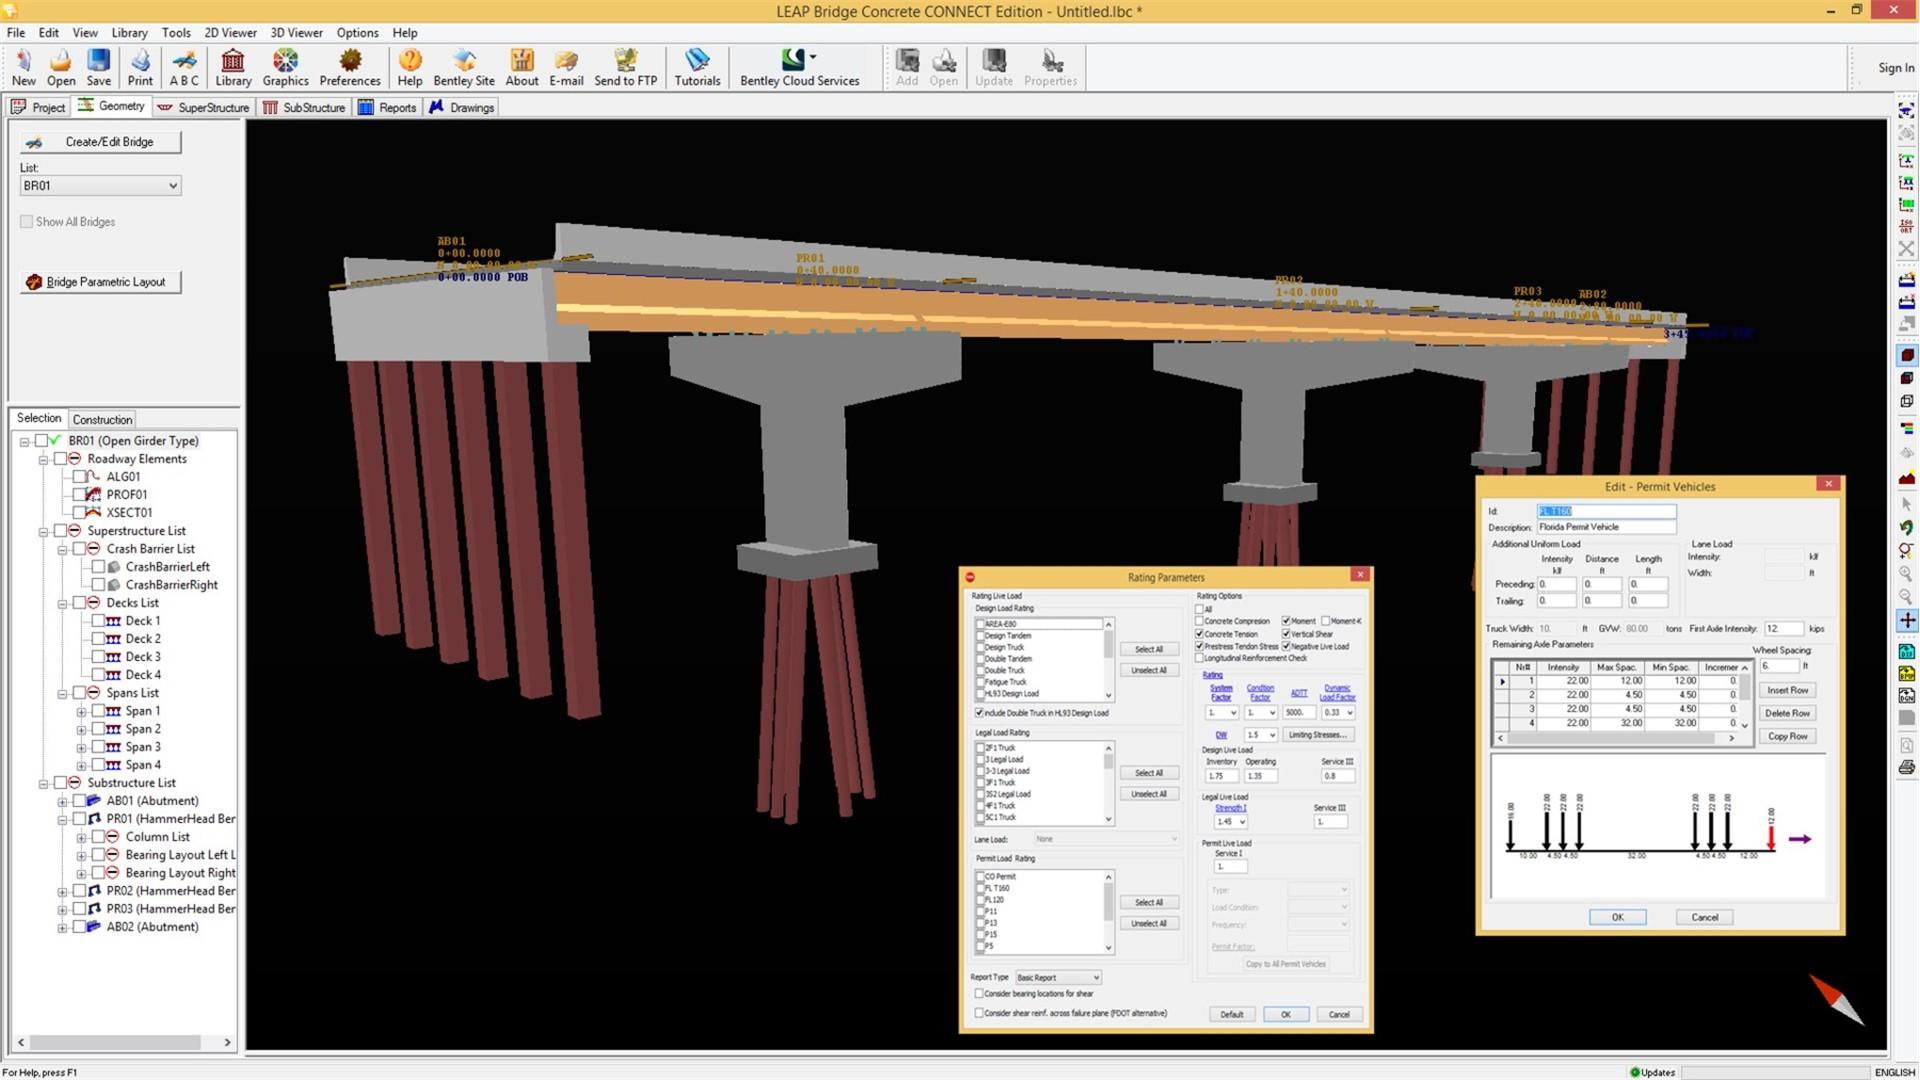 Precast Bridges Concrete Bridge Design Analysis Software Leap Bridge Concrete